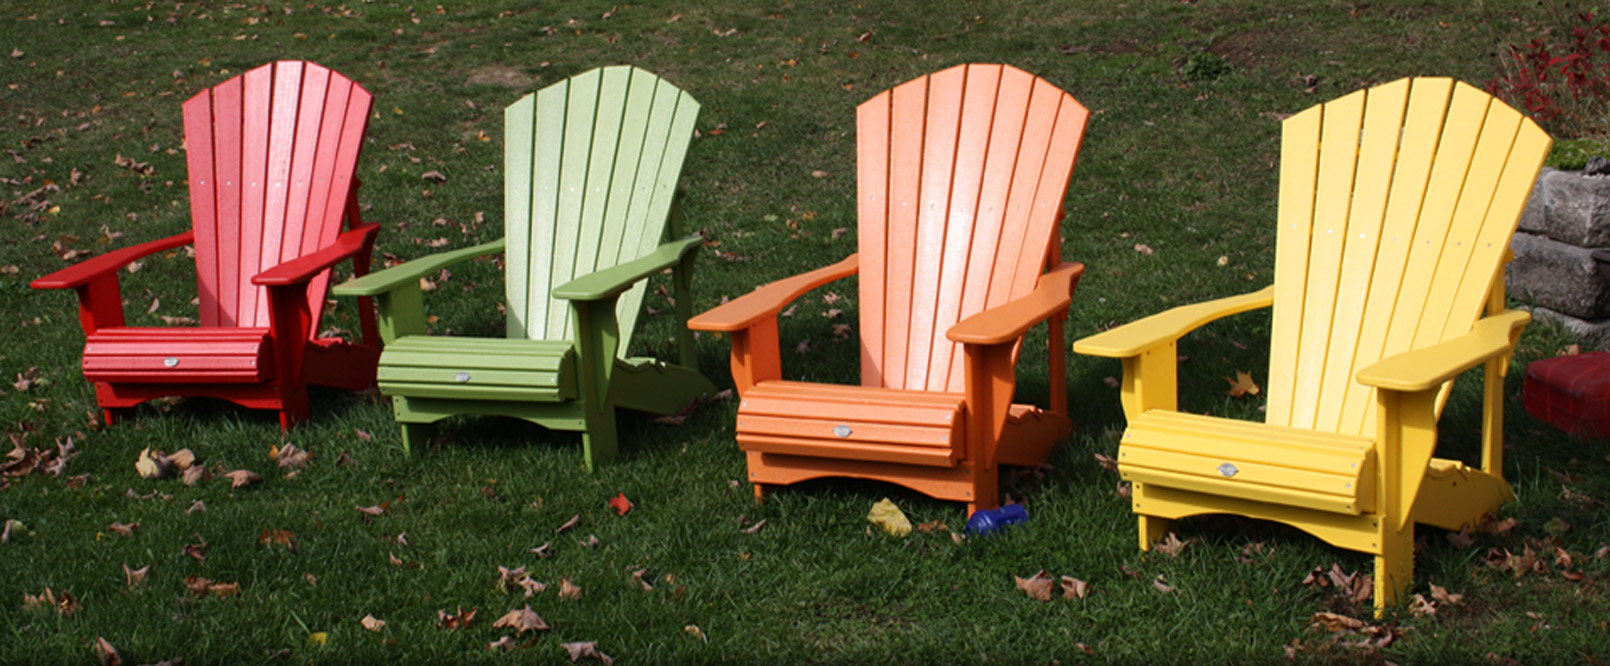 Image of Muskoka Chairs on a dock